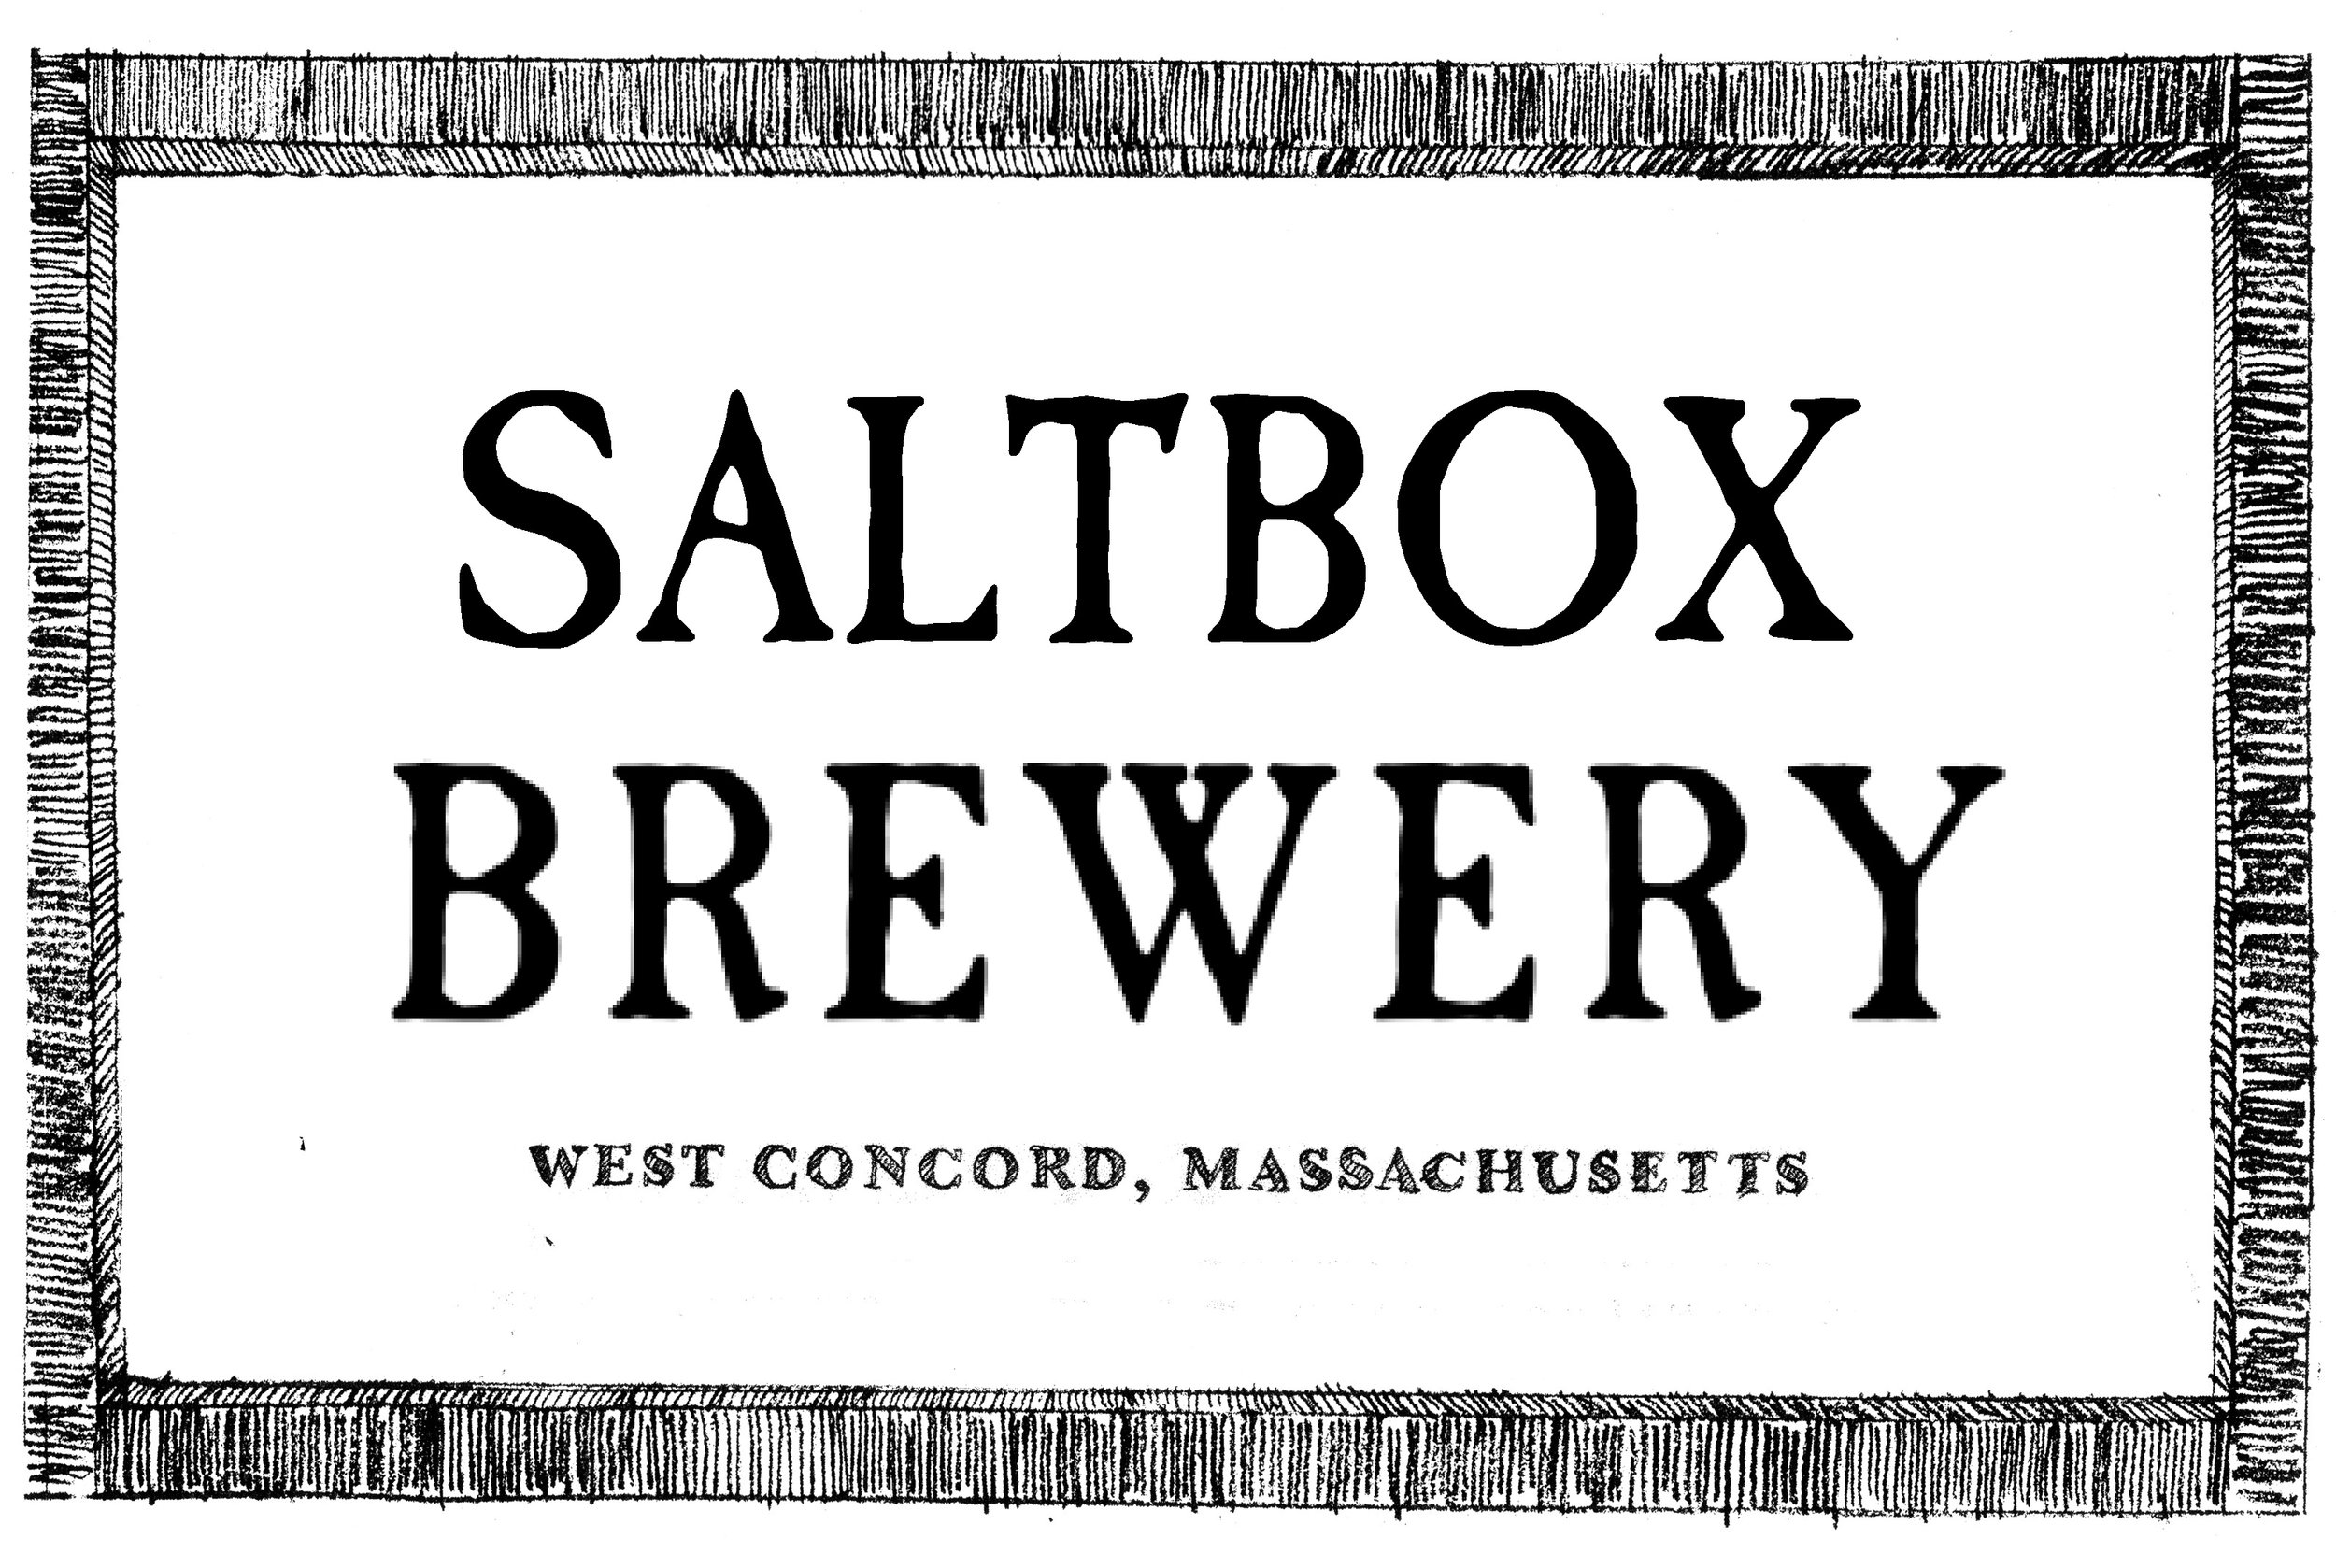 Saltbox Brewery.jpg